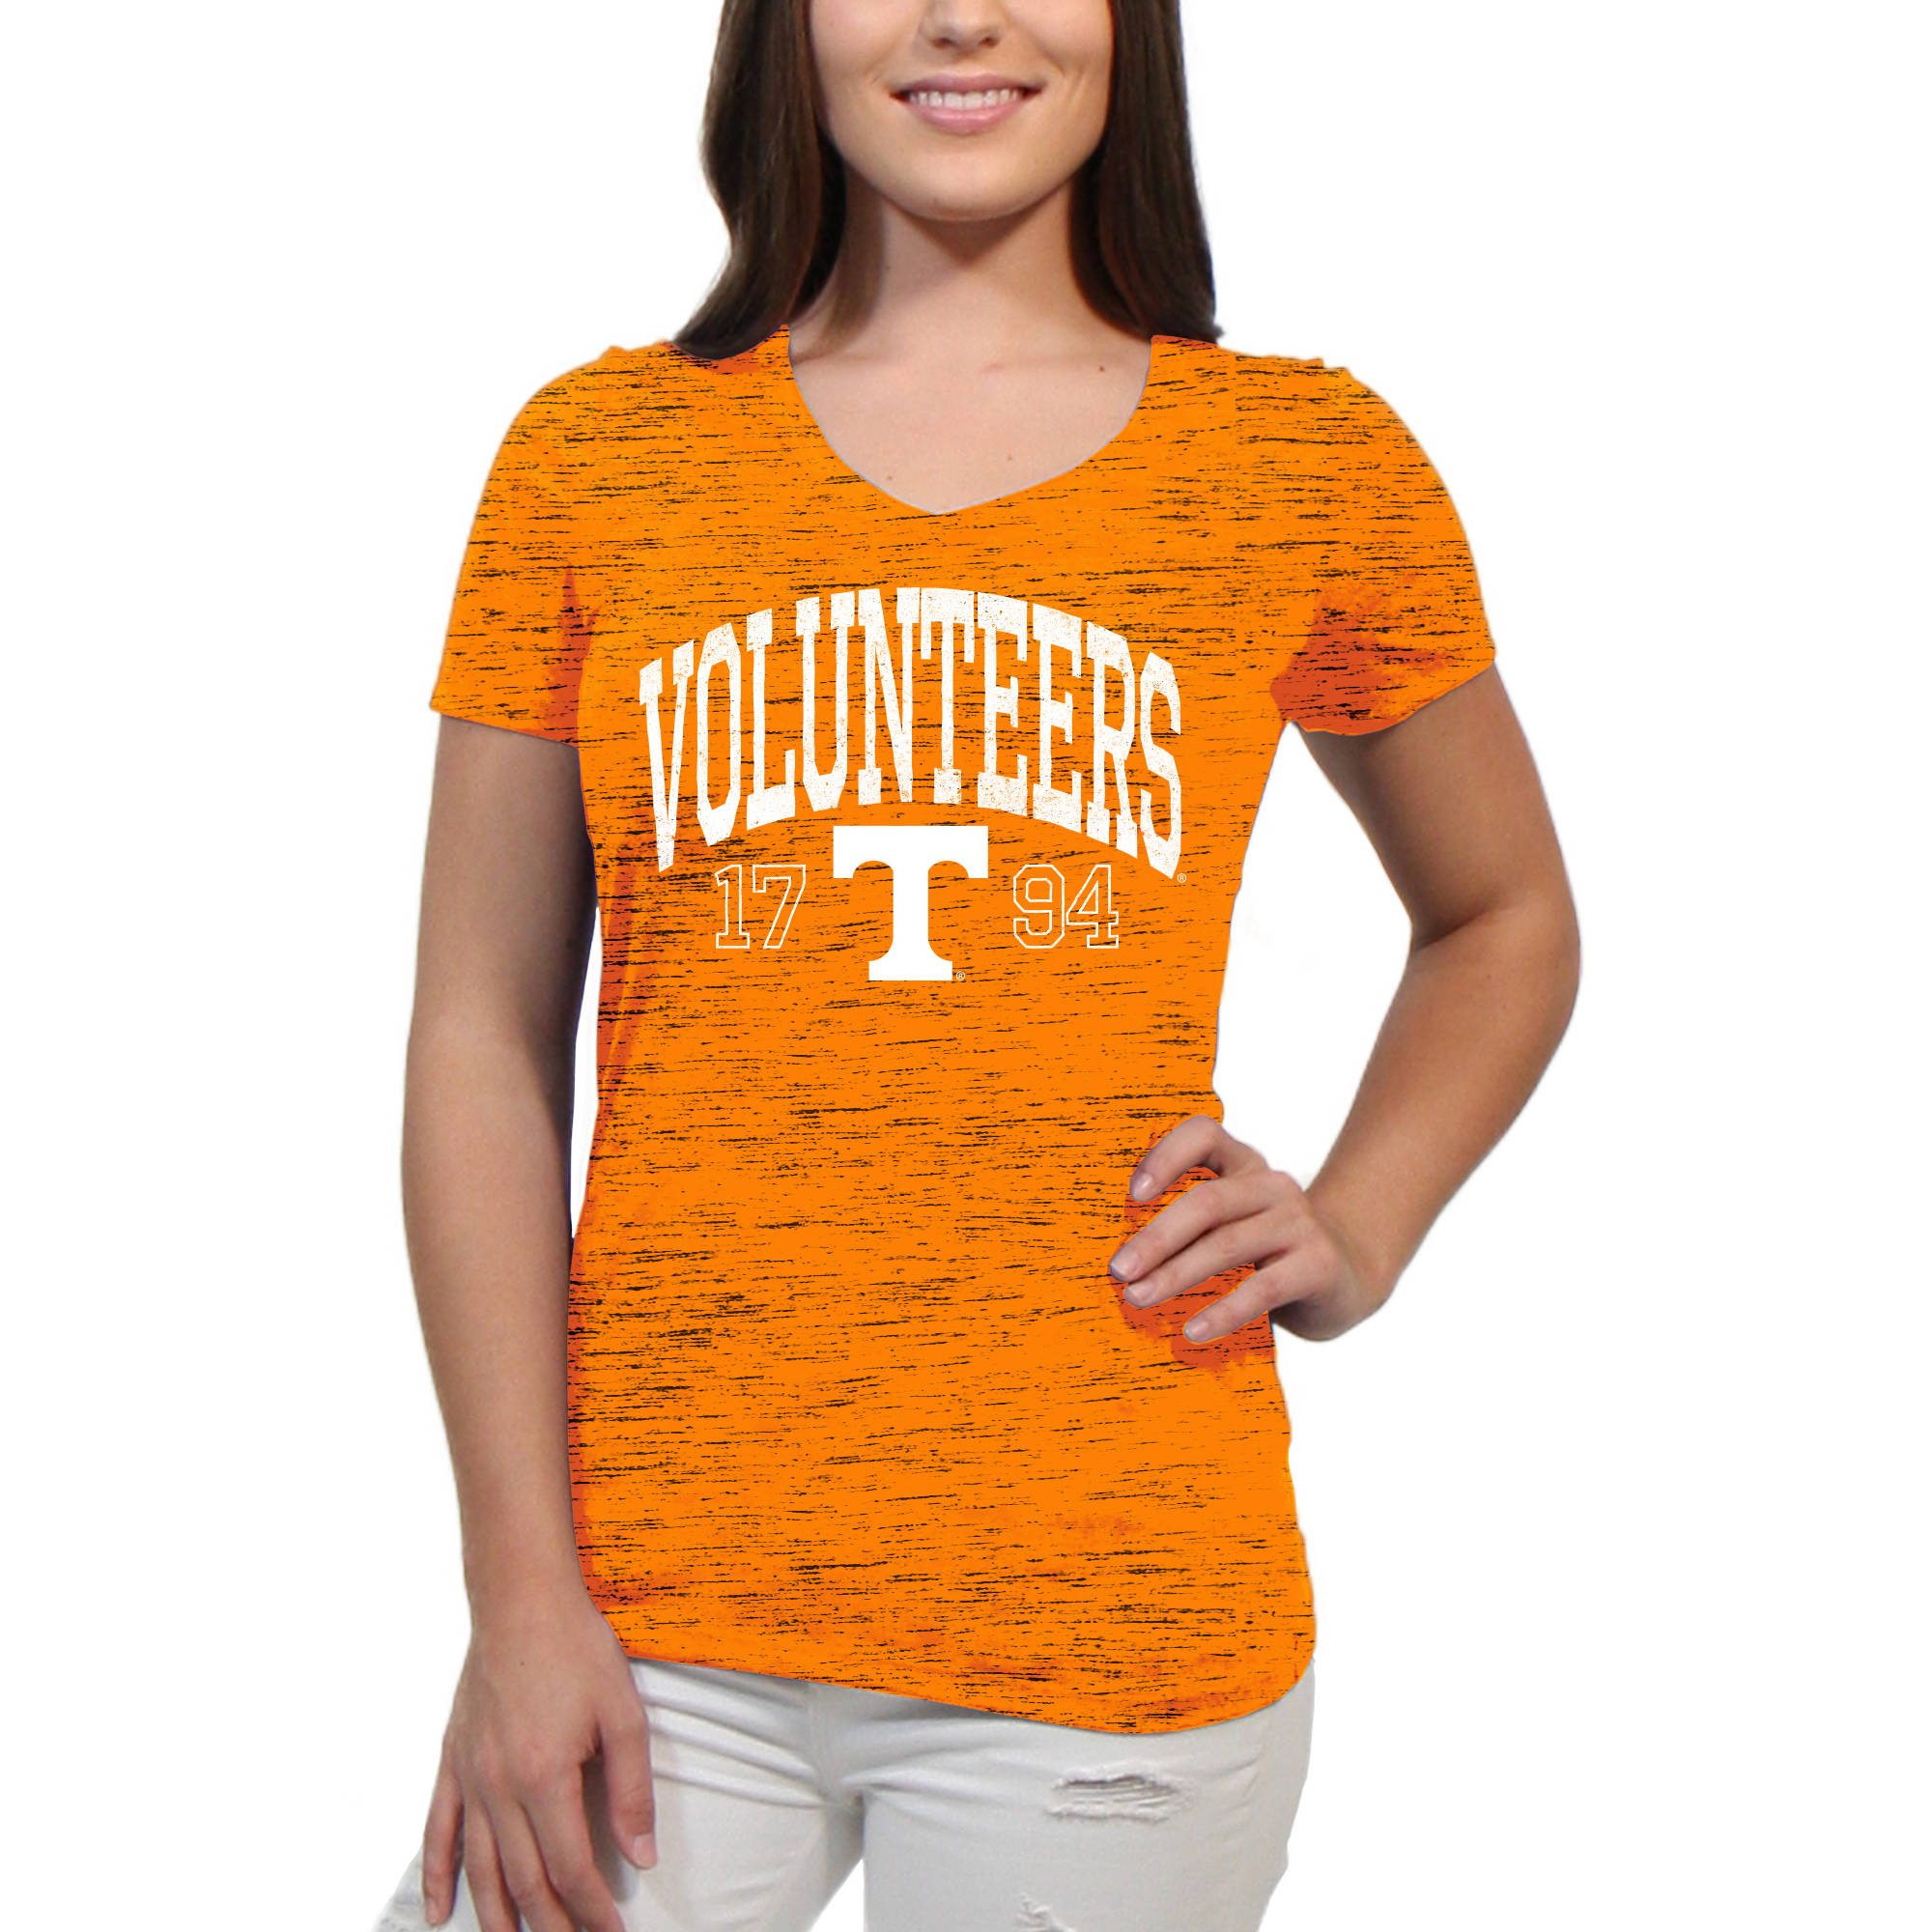 Tennessee Volunteers Text Overlay Women's/Juniors Team Short Sleeve V Neck Tee Shirt